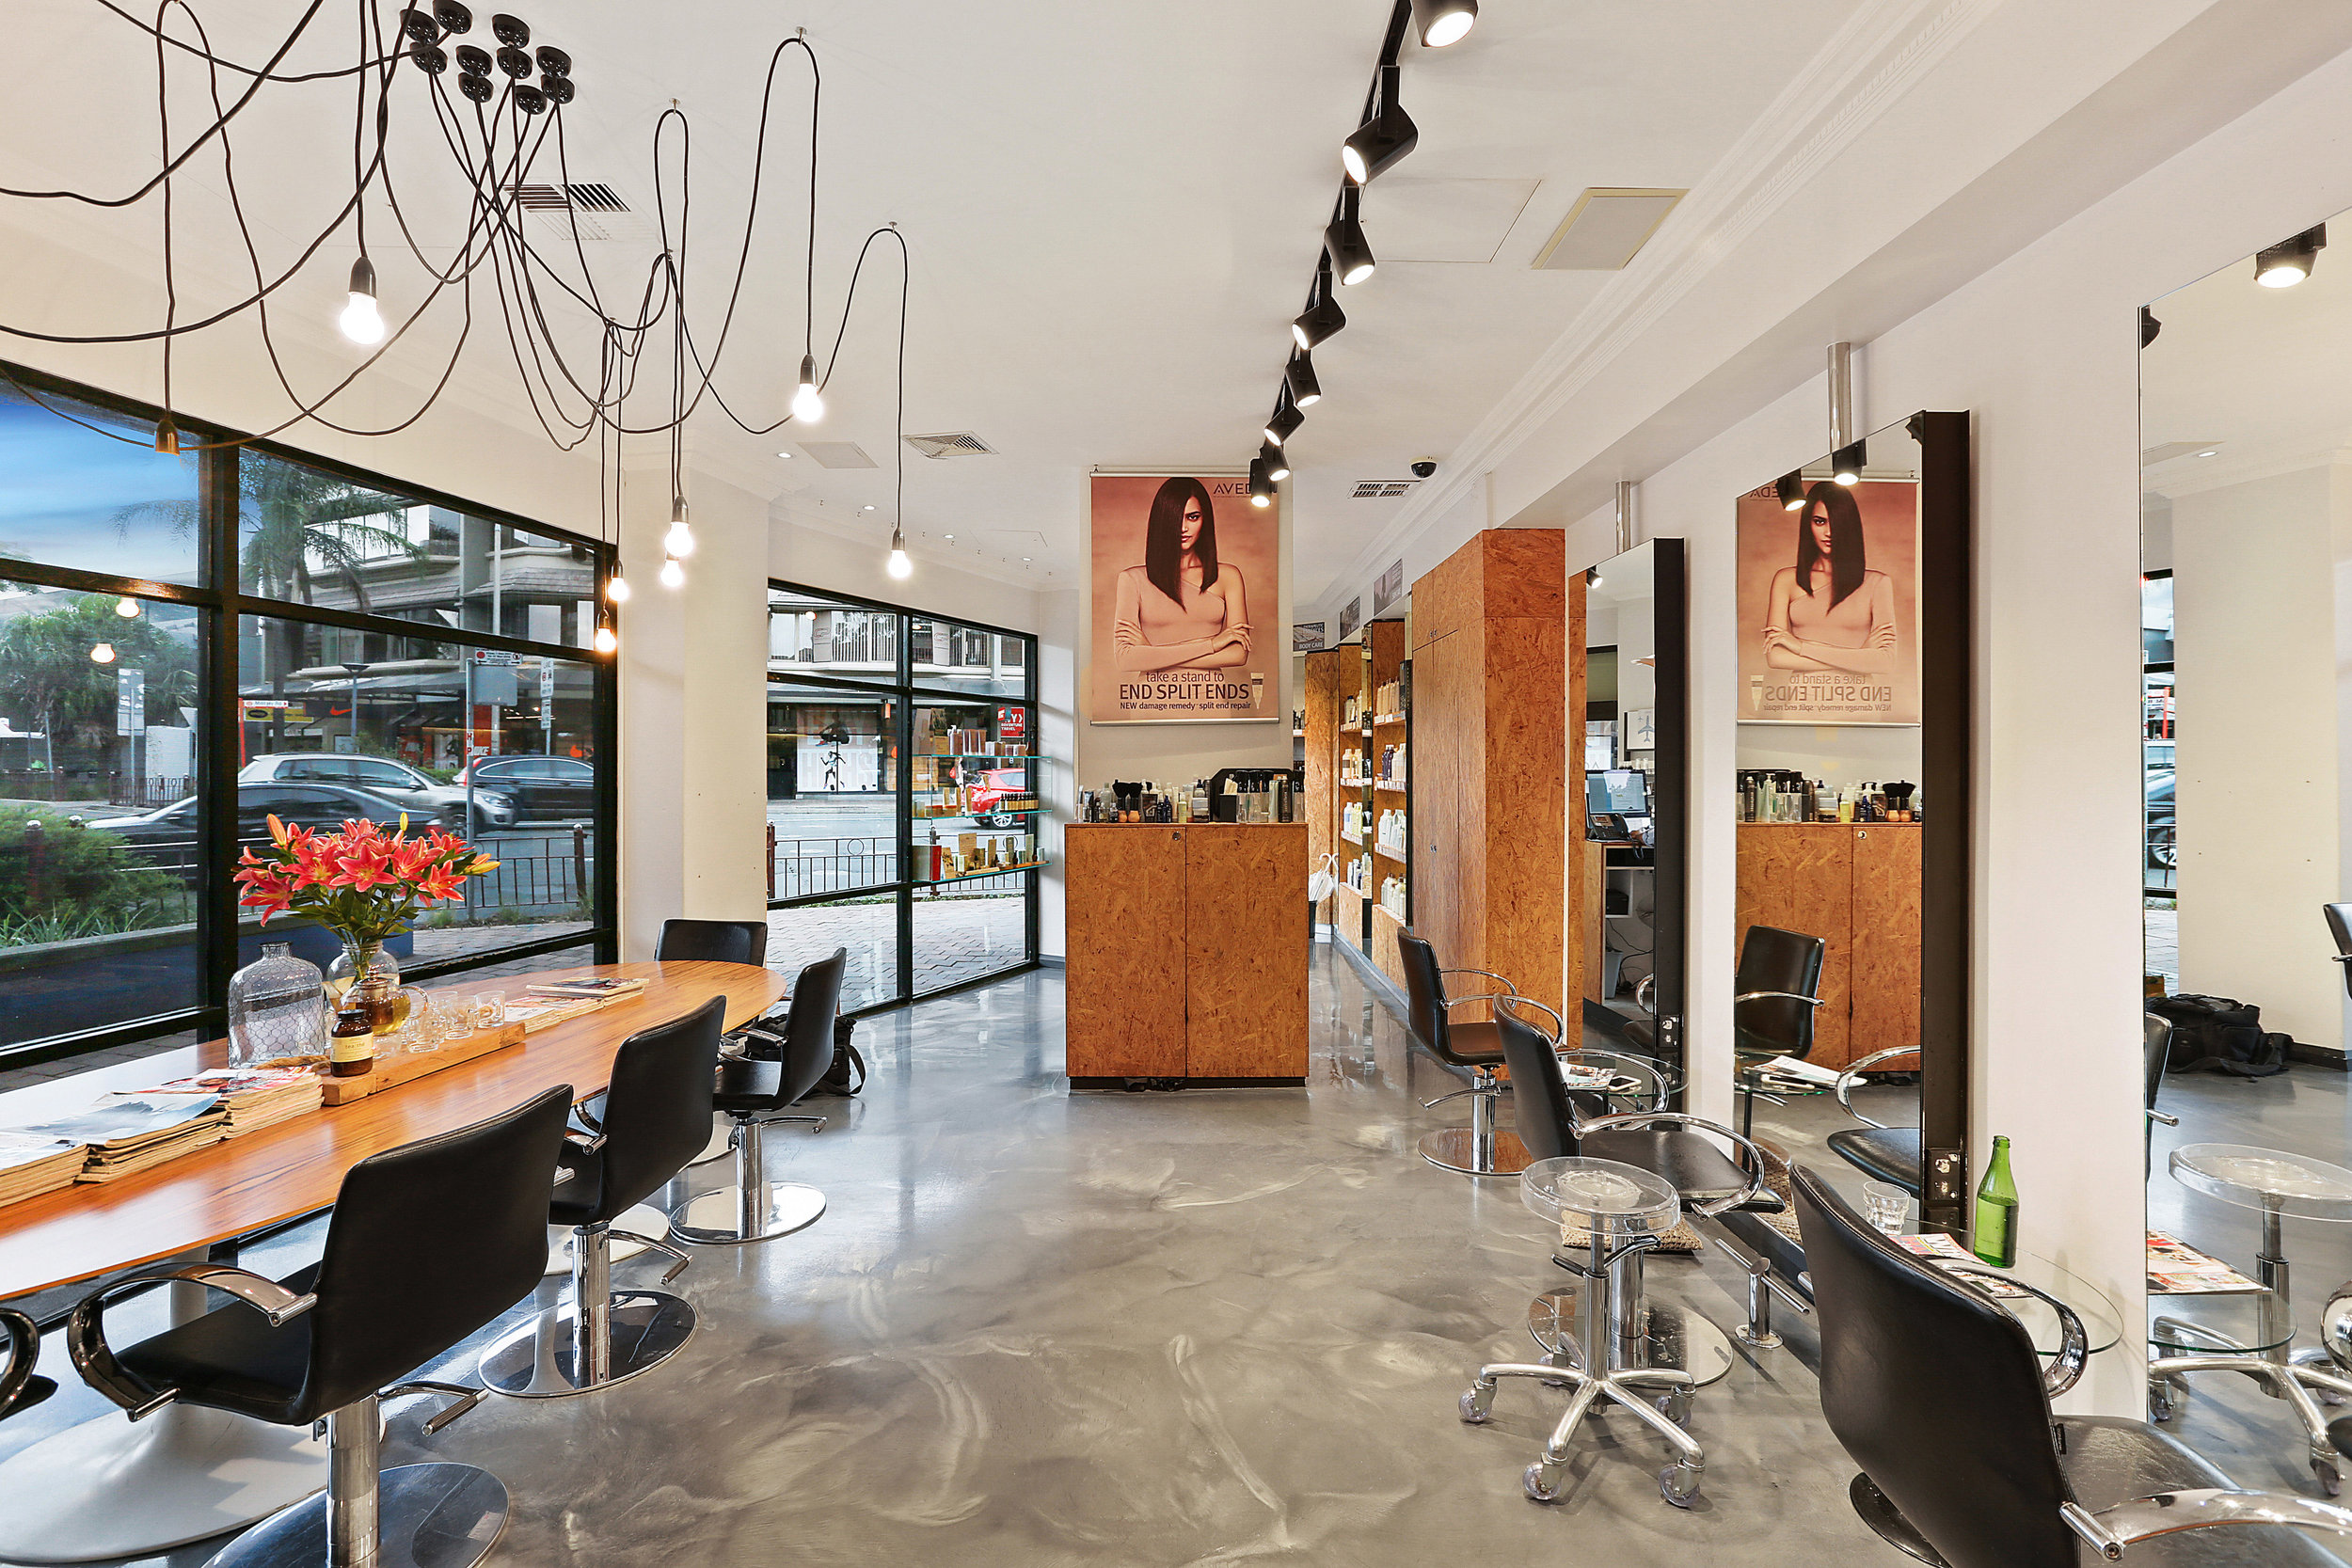 We're an Aveda Concept Salon - We specialise in cutting & colouring services.Opening its doors on July 2010, as the dream of its namesake owner Nathan Yazbek. The salon is a beautiful space that reflects Nathan's philosophy of providing beautiful hair, great customer service & on all levels, a fantastic experience.